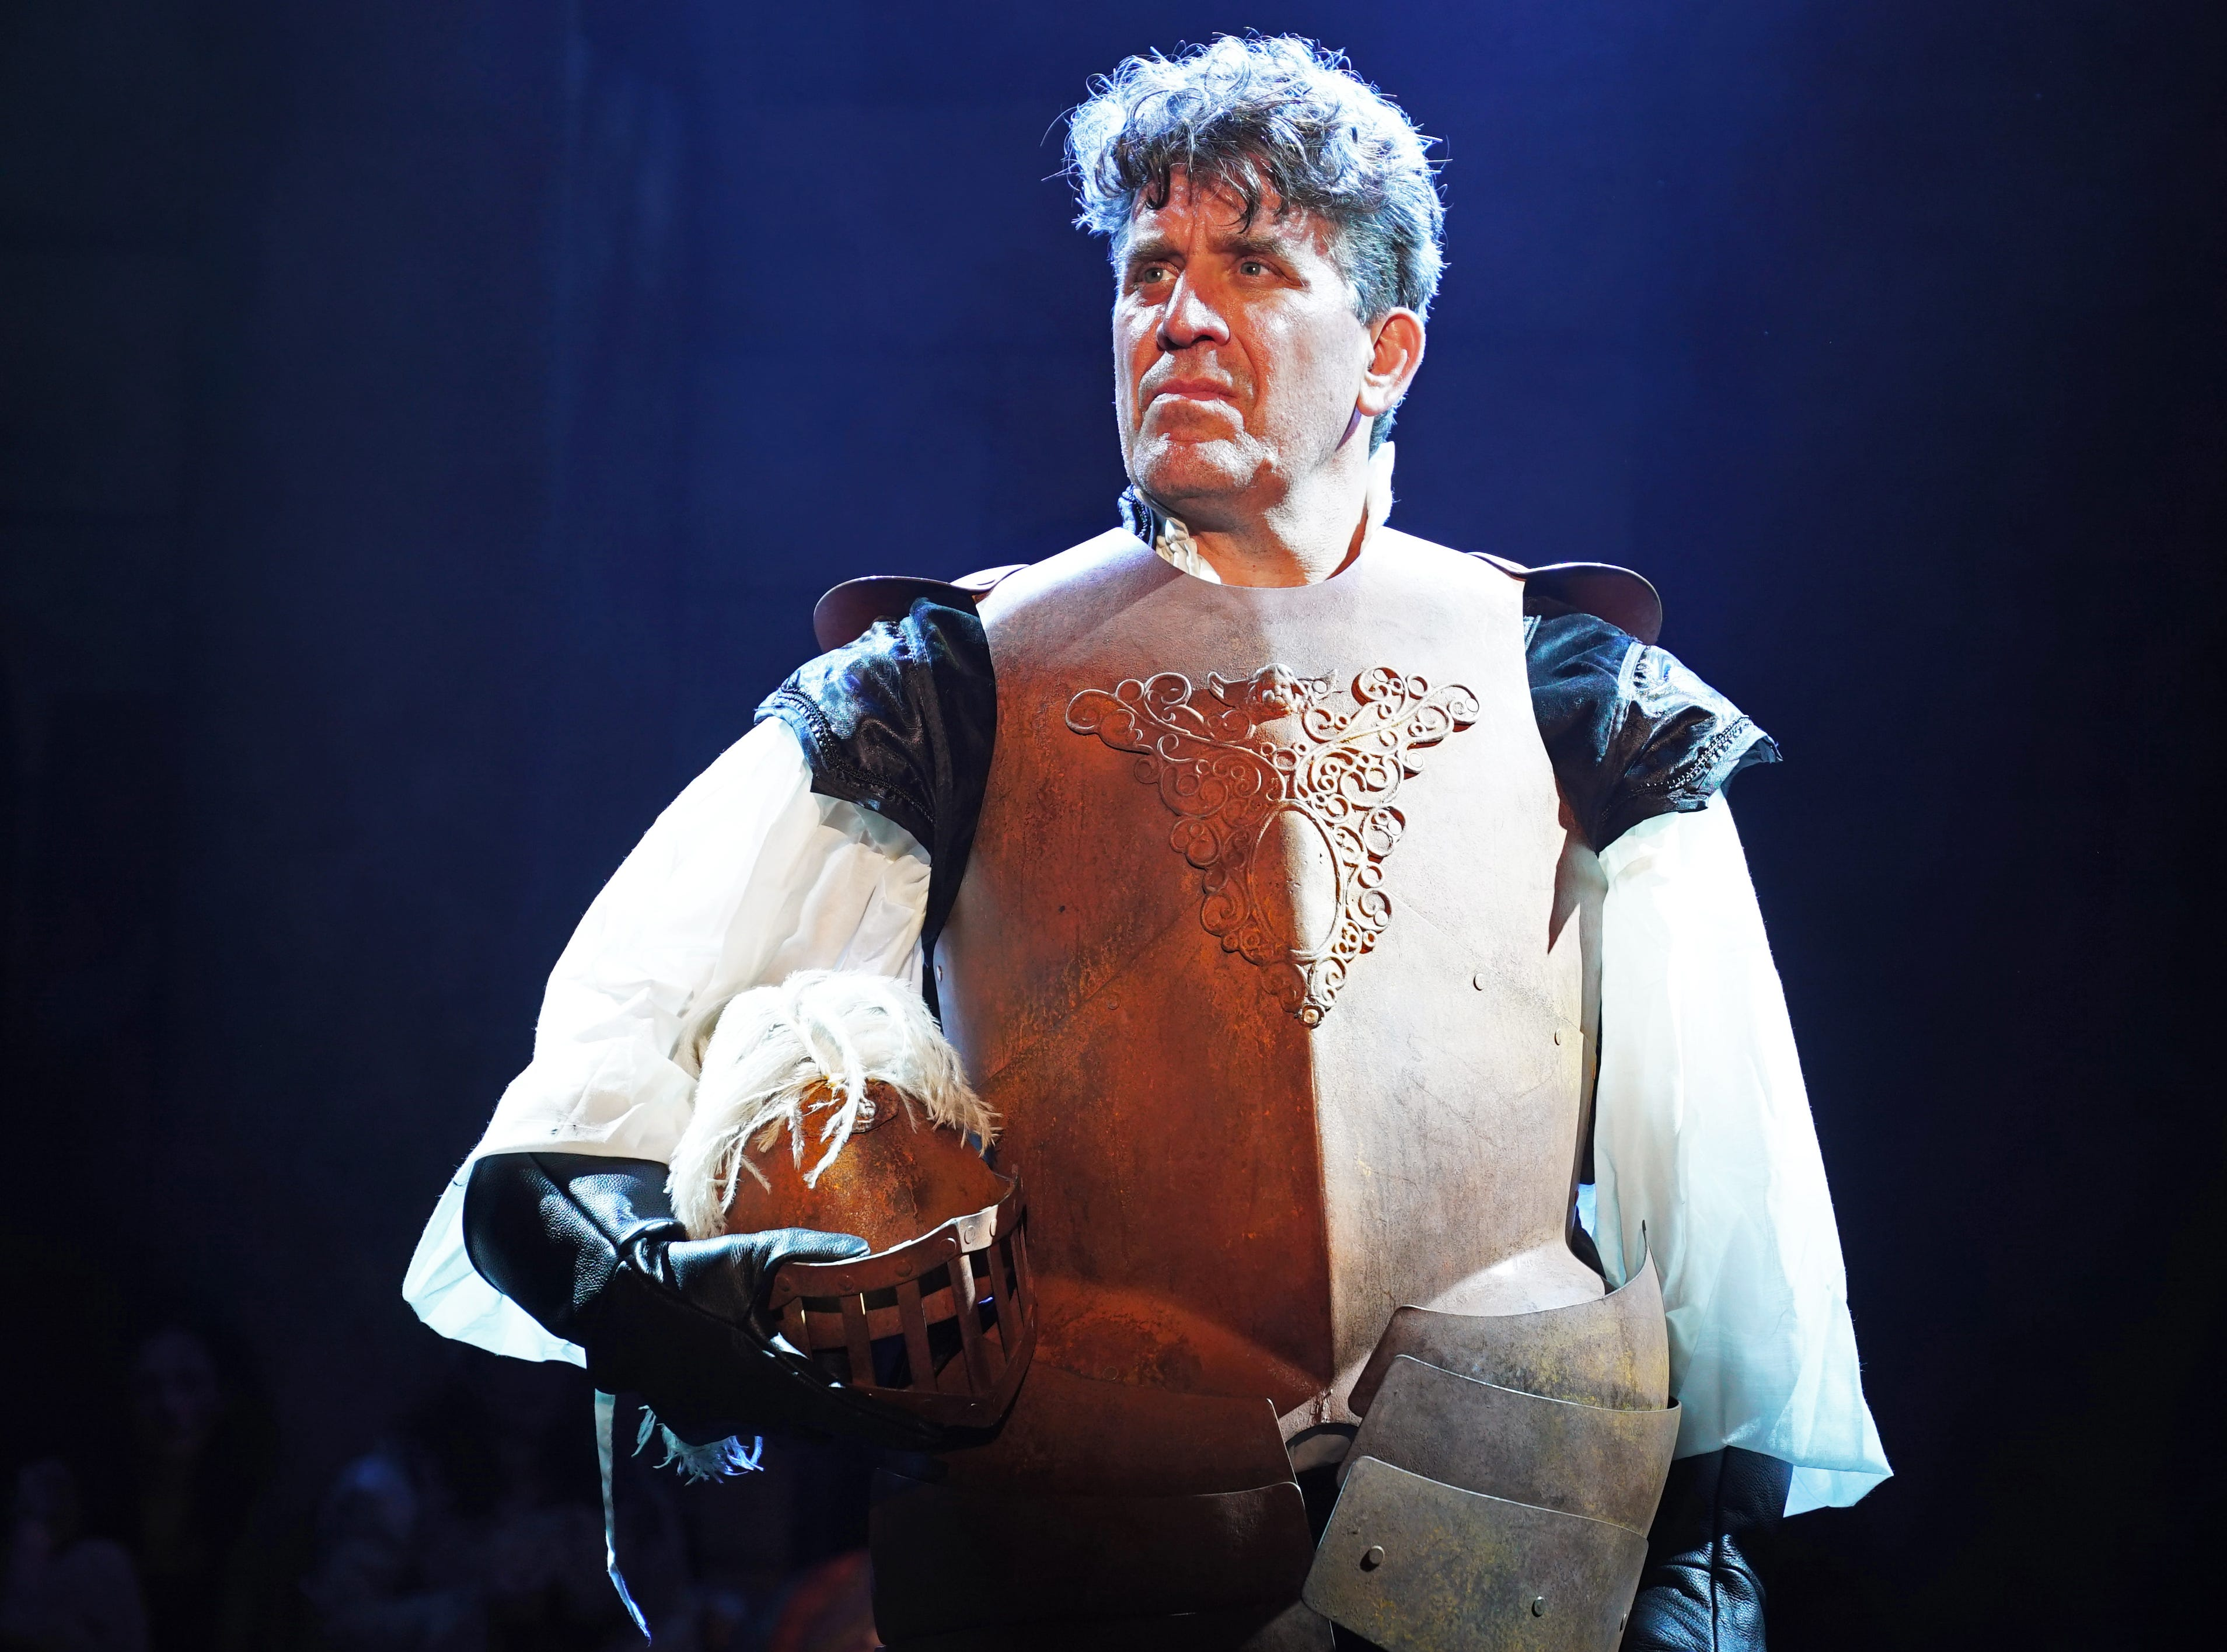 """Patrick Sullivan plays """"Don Quixote"""" in Titusville Playhouse's production of """"The Man of La Mancha."""" The show runs through March 17th. For tickets or more information, visit titusvilleplayhouse.com"""